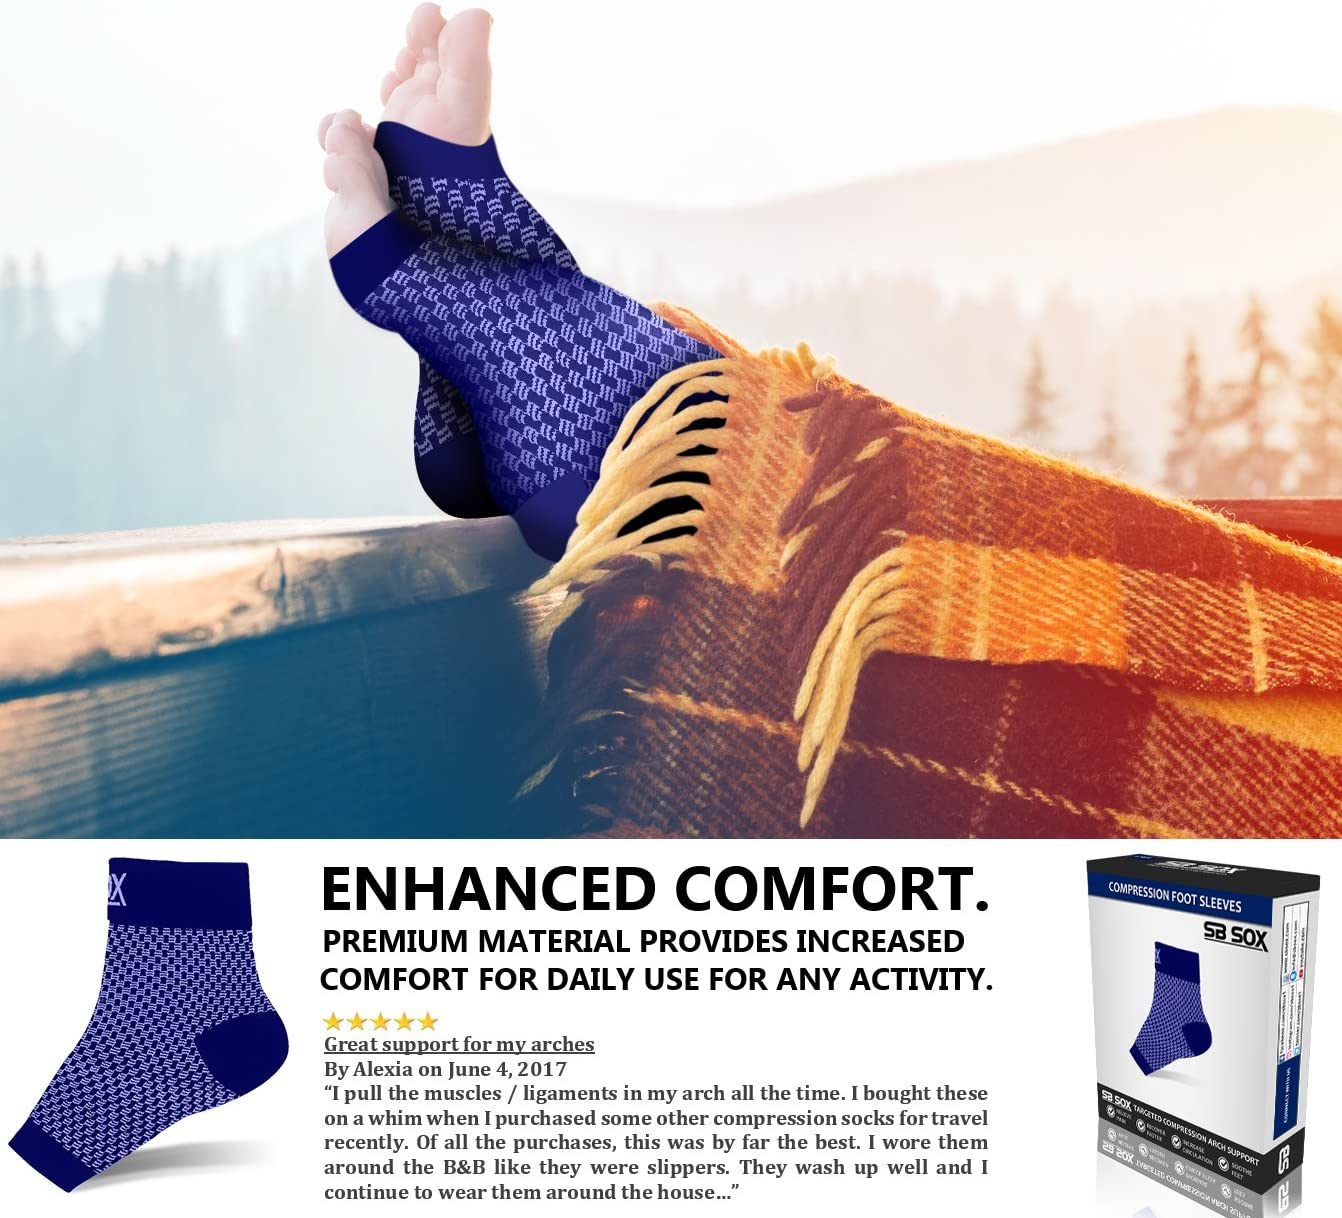 SB SOX Compression Foot Sleeves for Men & Women - BEST Plantar Fasciitis Socks for Plantar Fasciitis Pain Relief, Heel Pain, and Treatment for Everyday Use with Arch Support (Navy, Medium) : Health & Personal Care